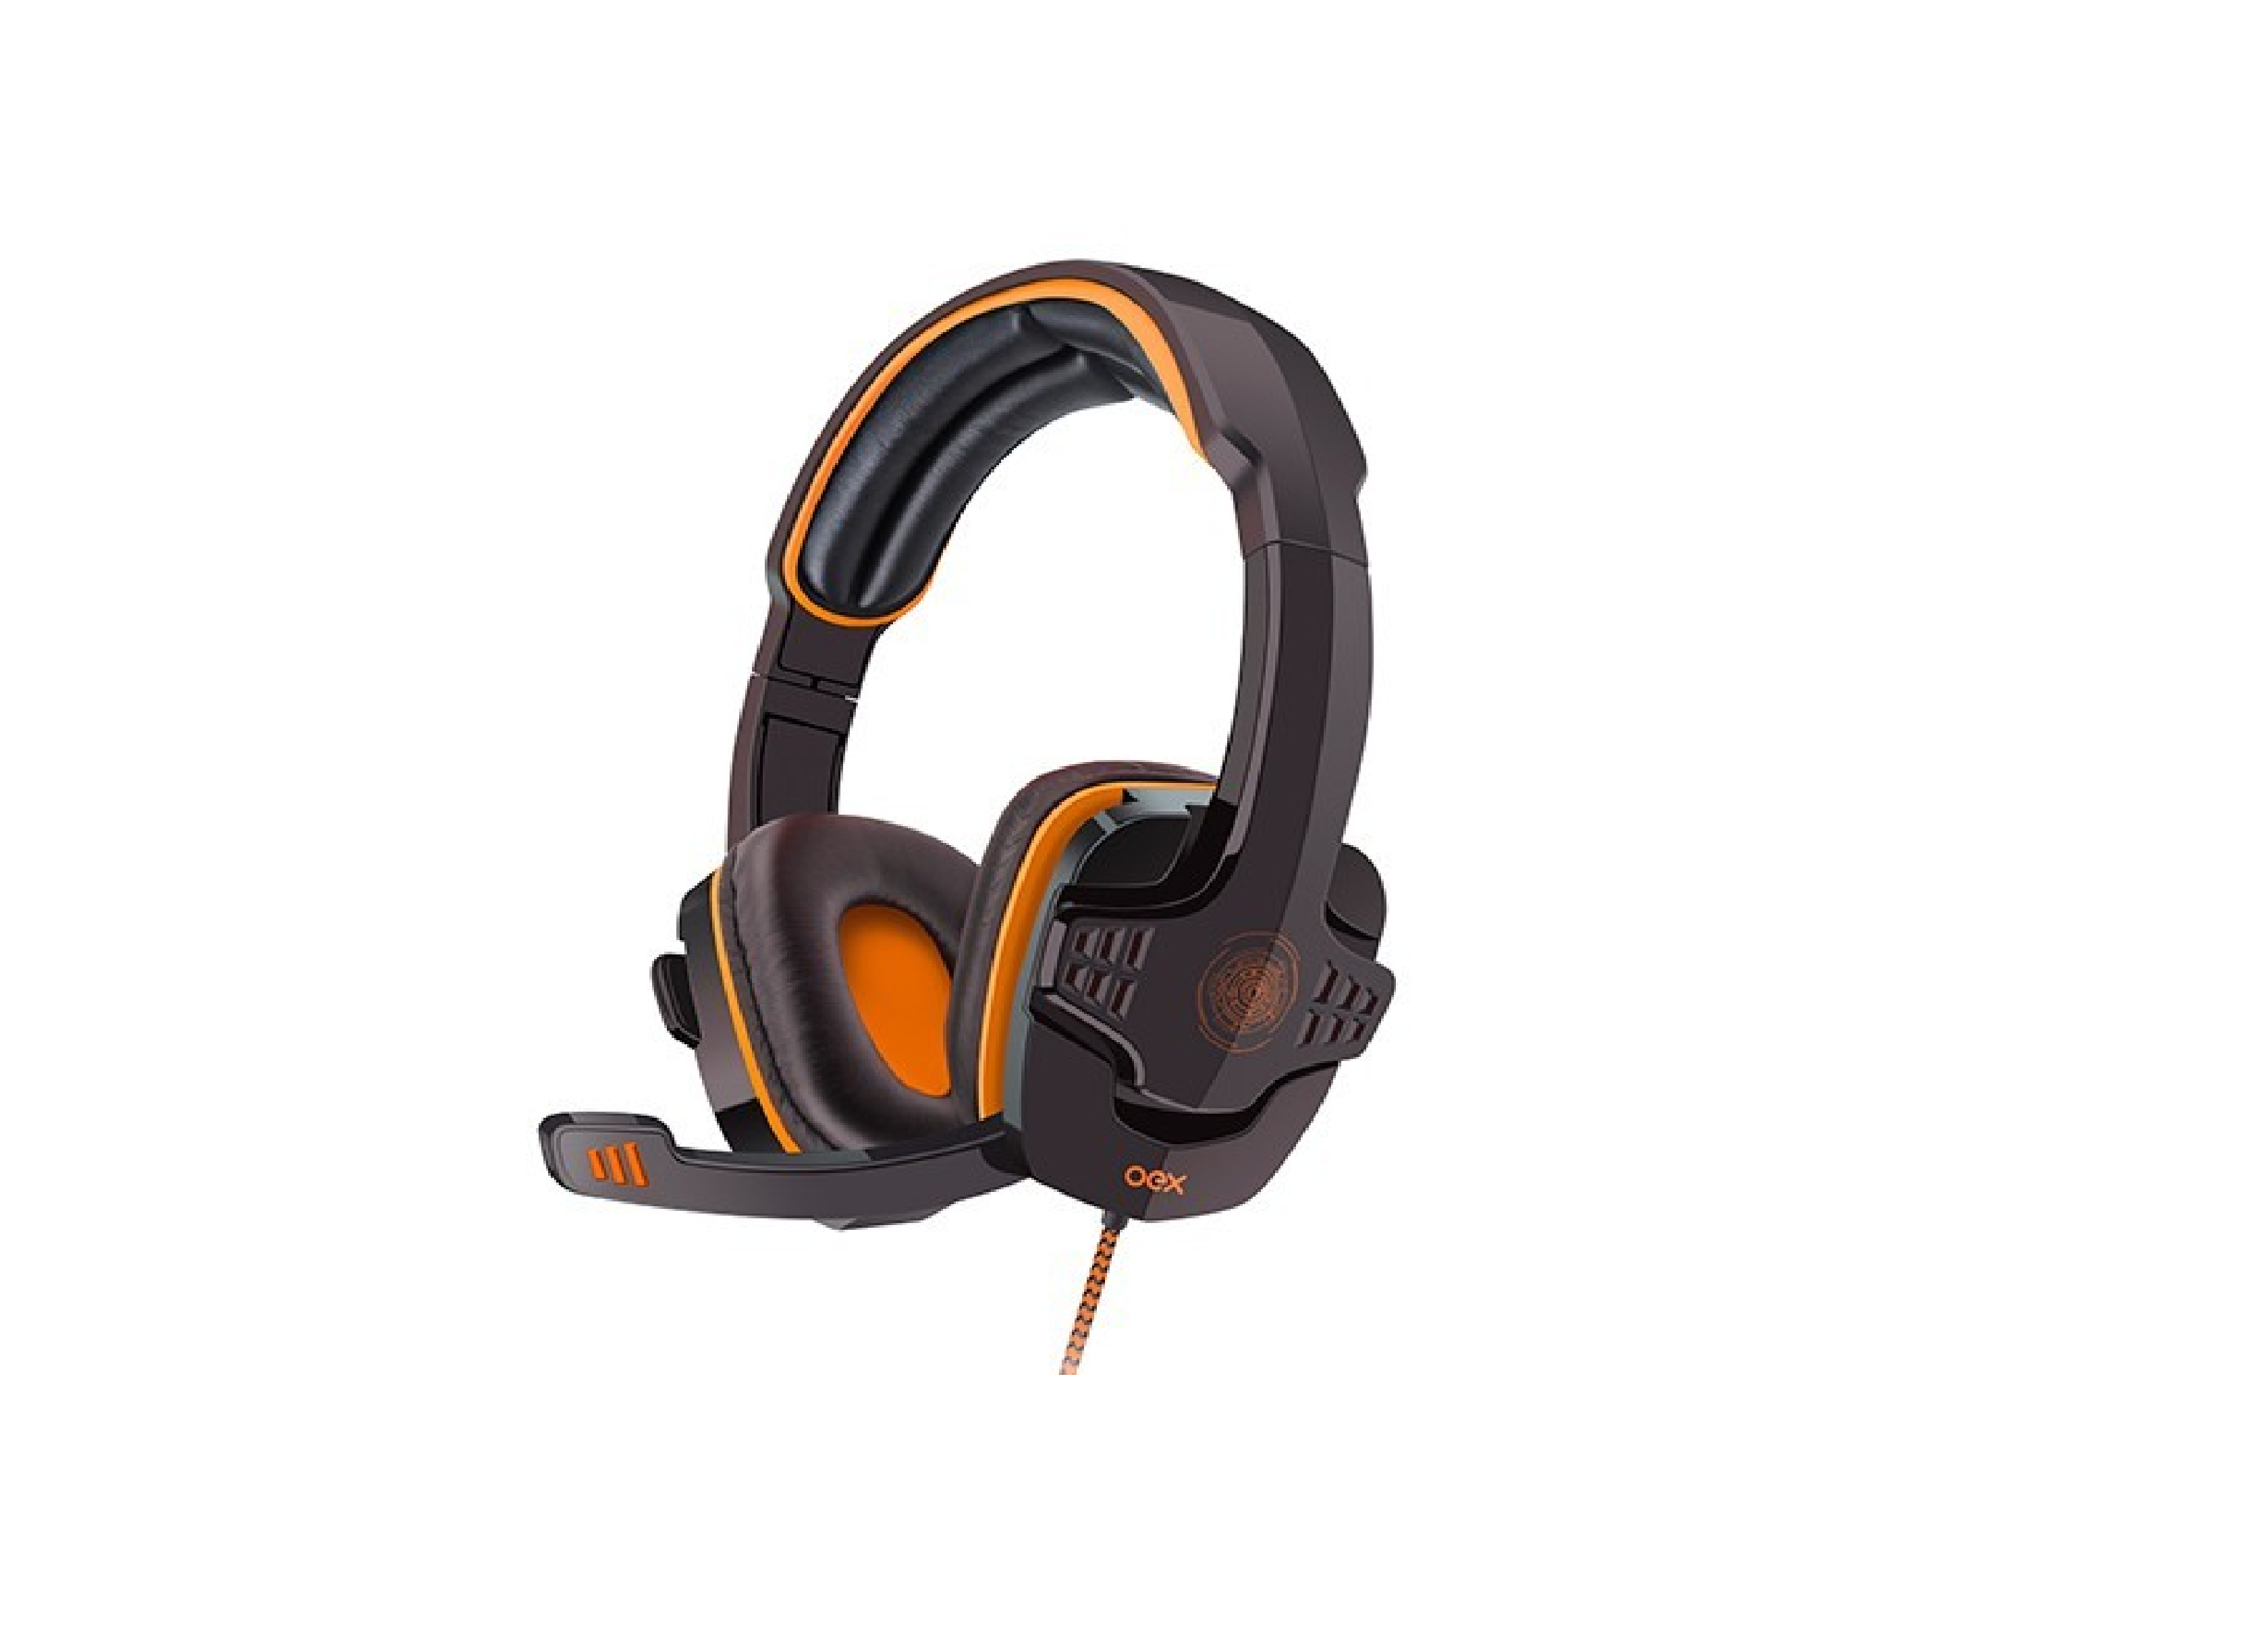 Pc headset with mic target